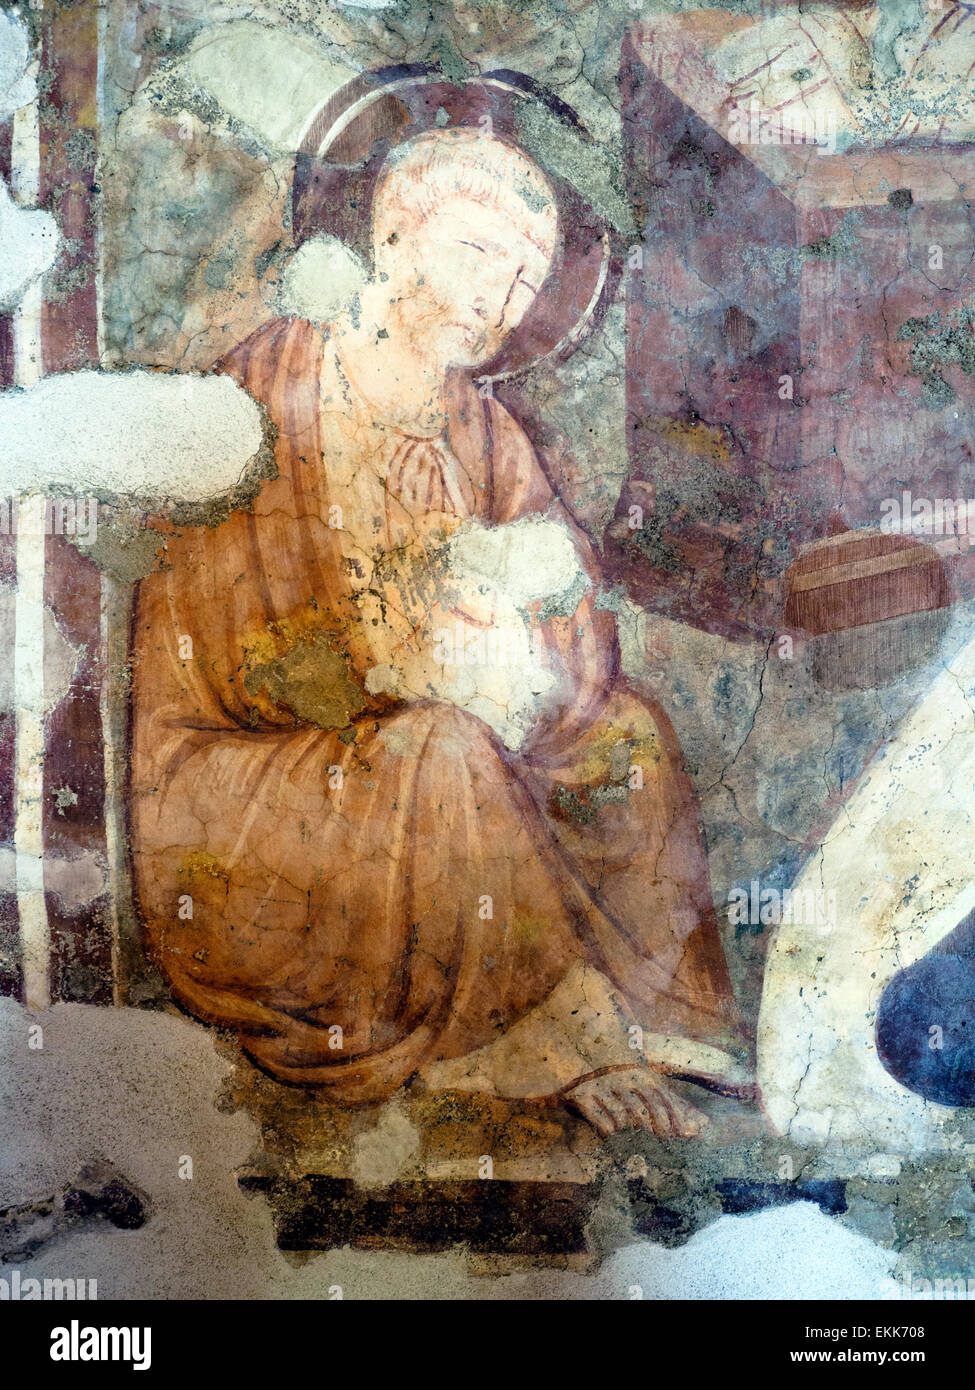 Nativity  (detail) by unknown author 14th century  tempera on plaster Caetani castle in the medieval town of Sermoneta - Stock Image